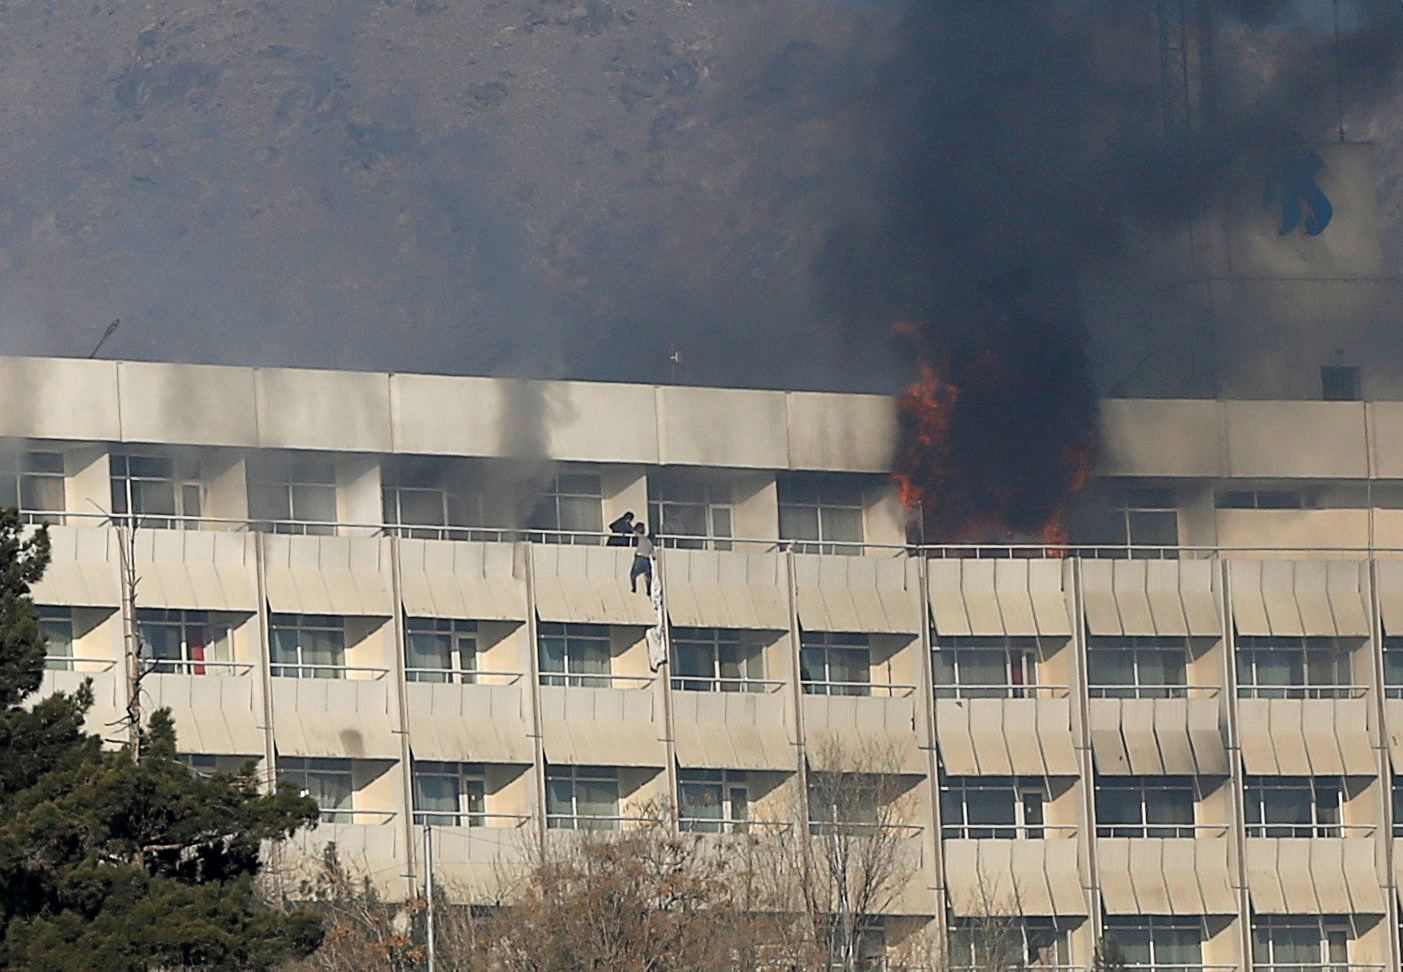 Kabul Hotel Attack Prompts Debate on Private Security Firms